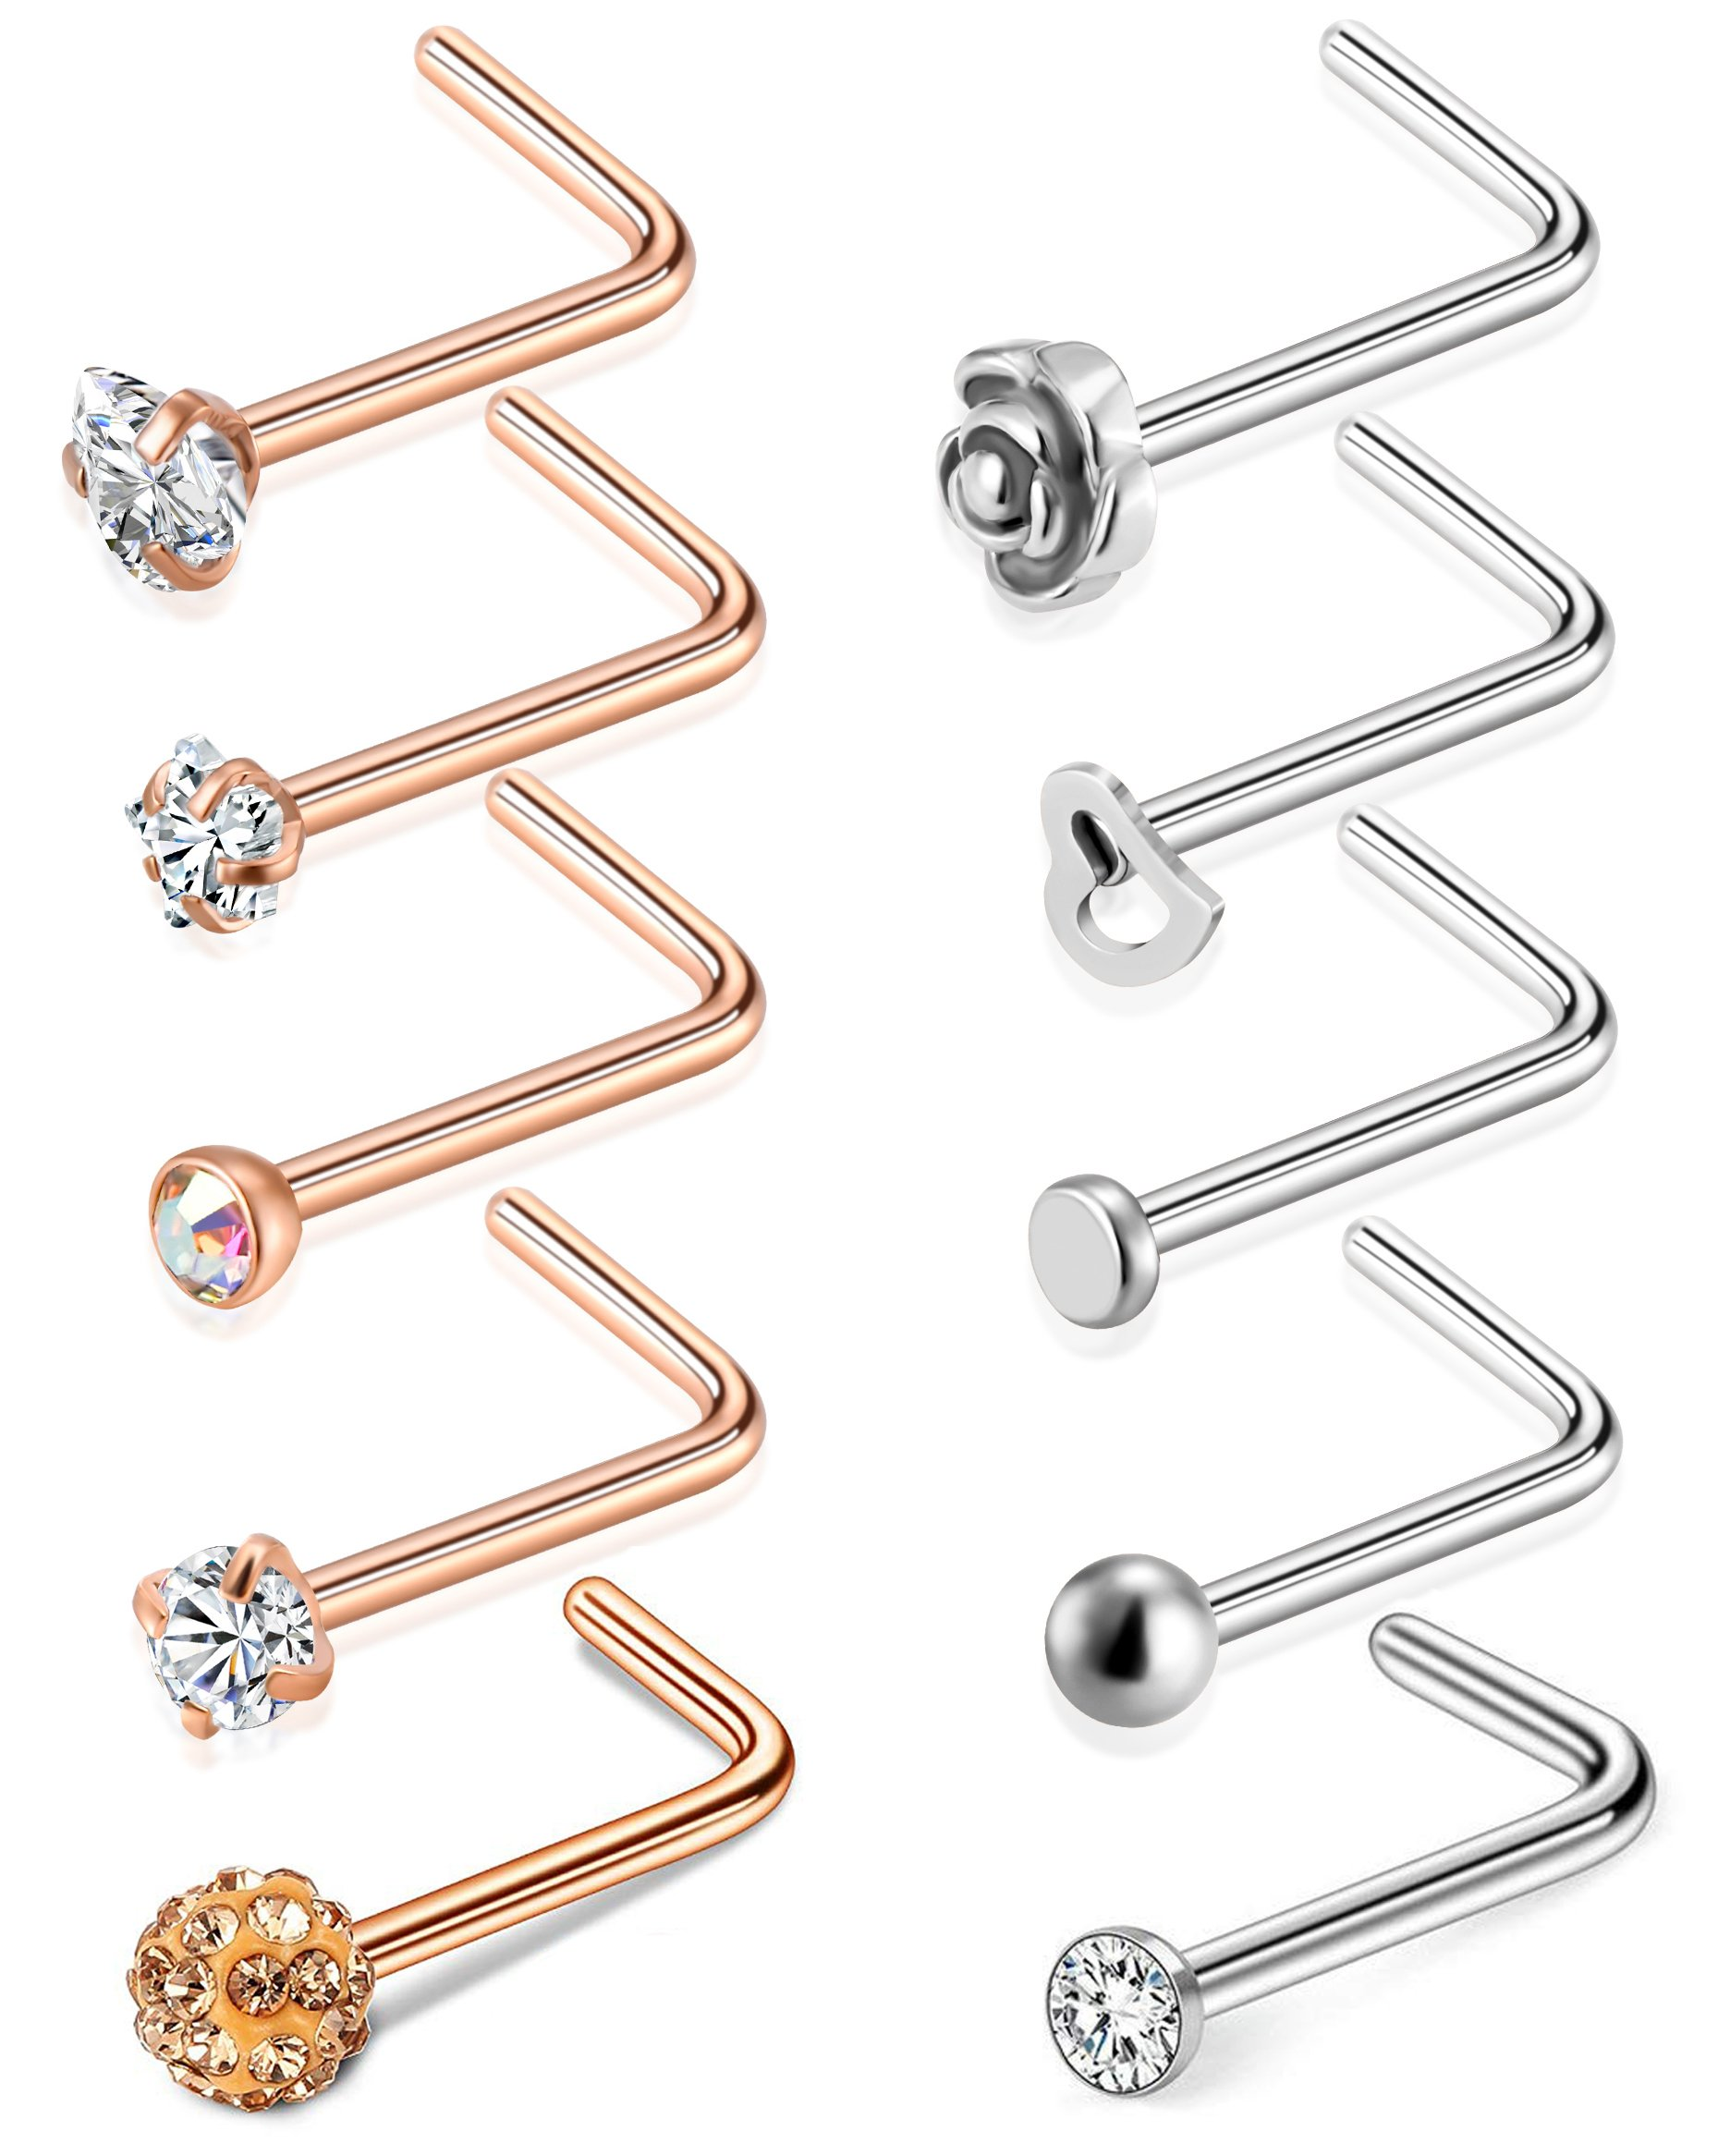 Tornito 20G 8Pcs Stainless Steel L Shaped Nose Ring CZ Nose Stud Retainer Labret Nose Piercing Jewelry (D:10Pcs,Silver Tone&Rose Gold Tone)